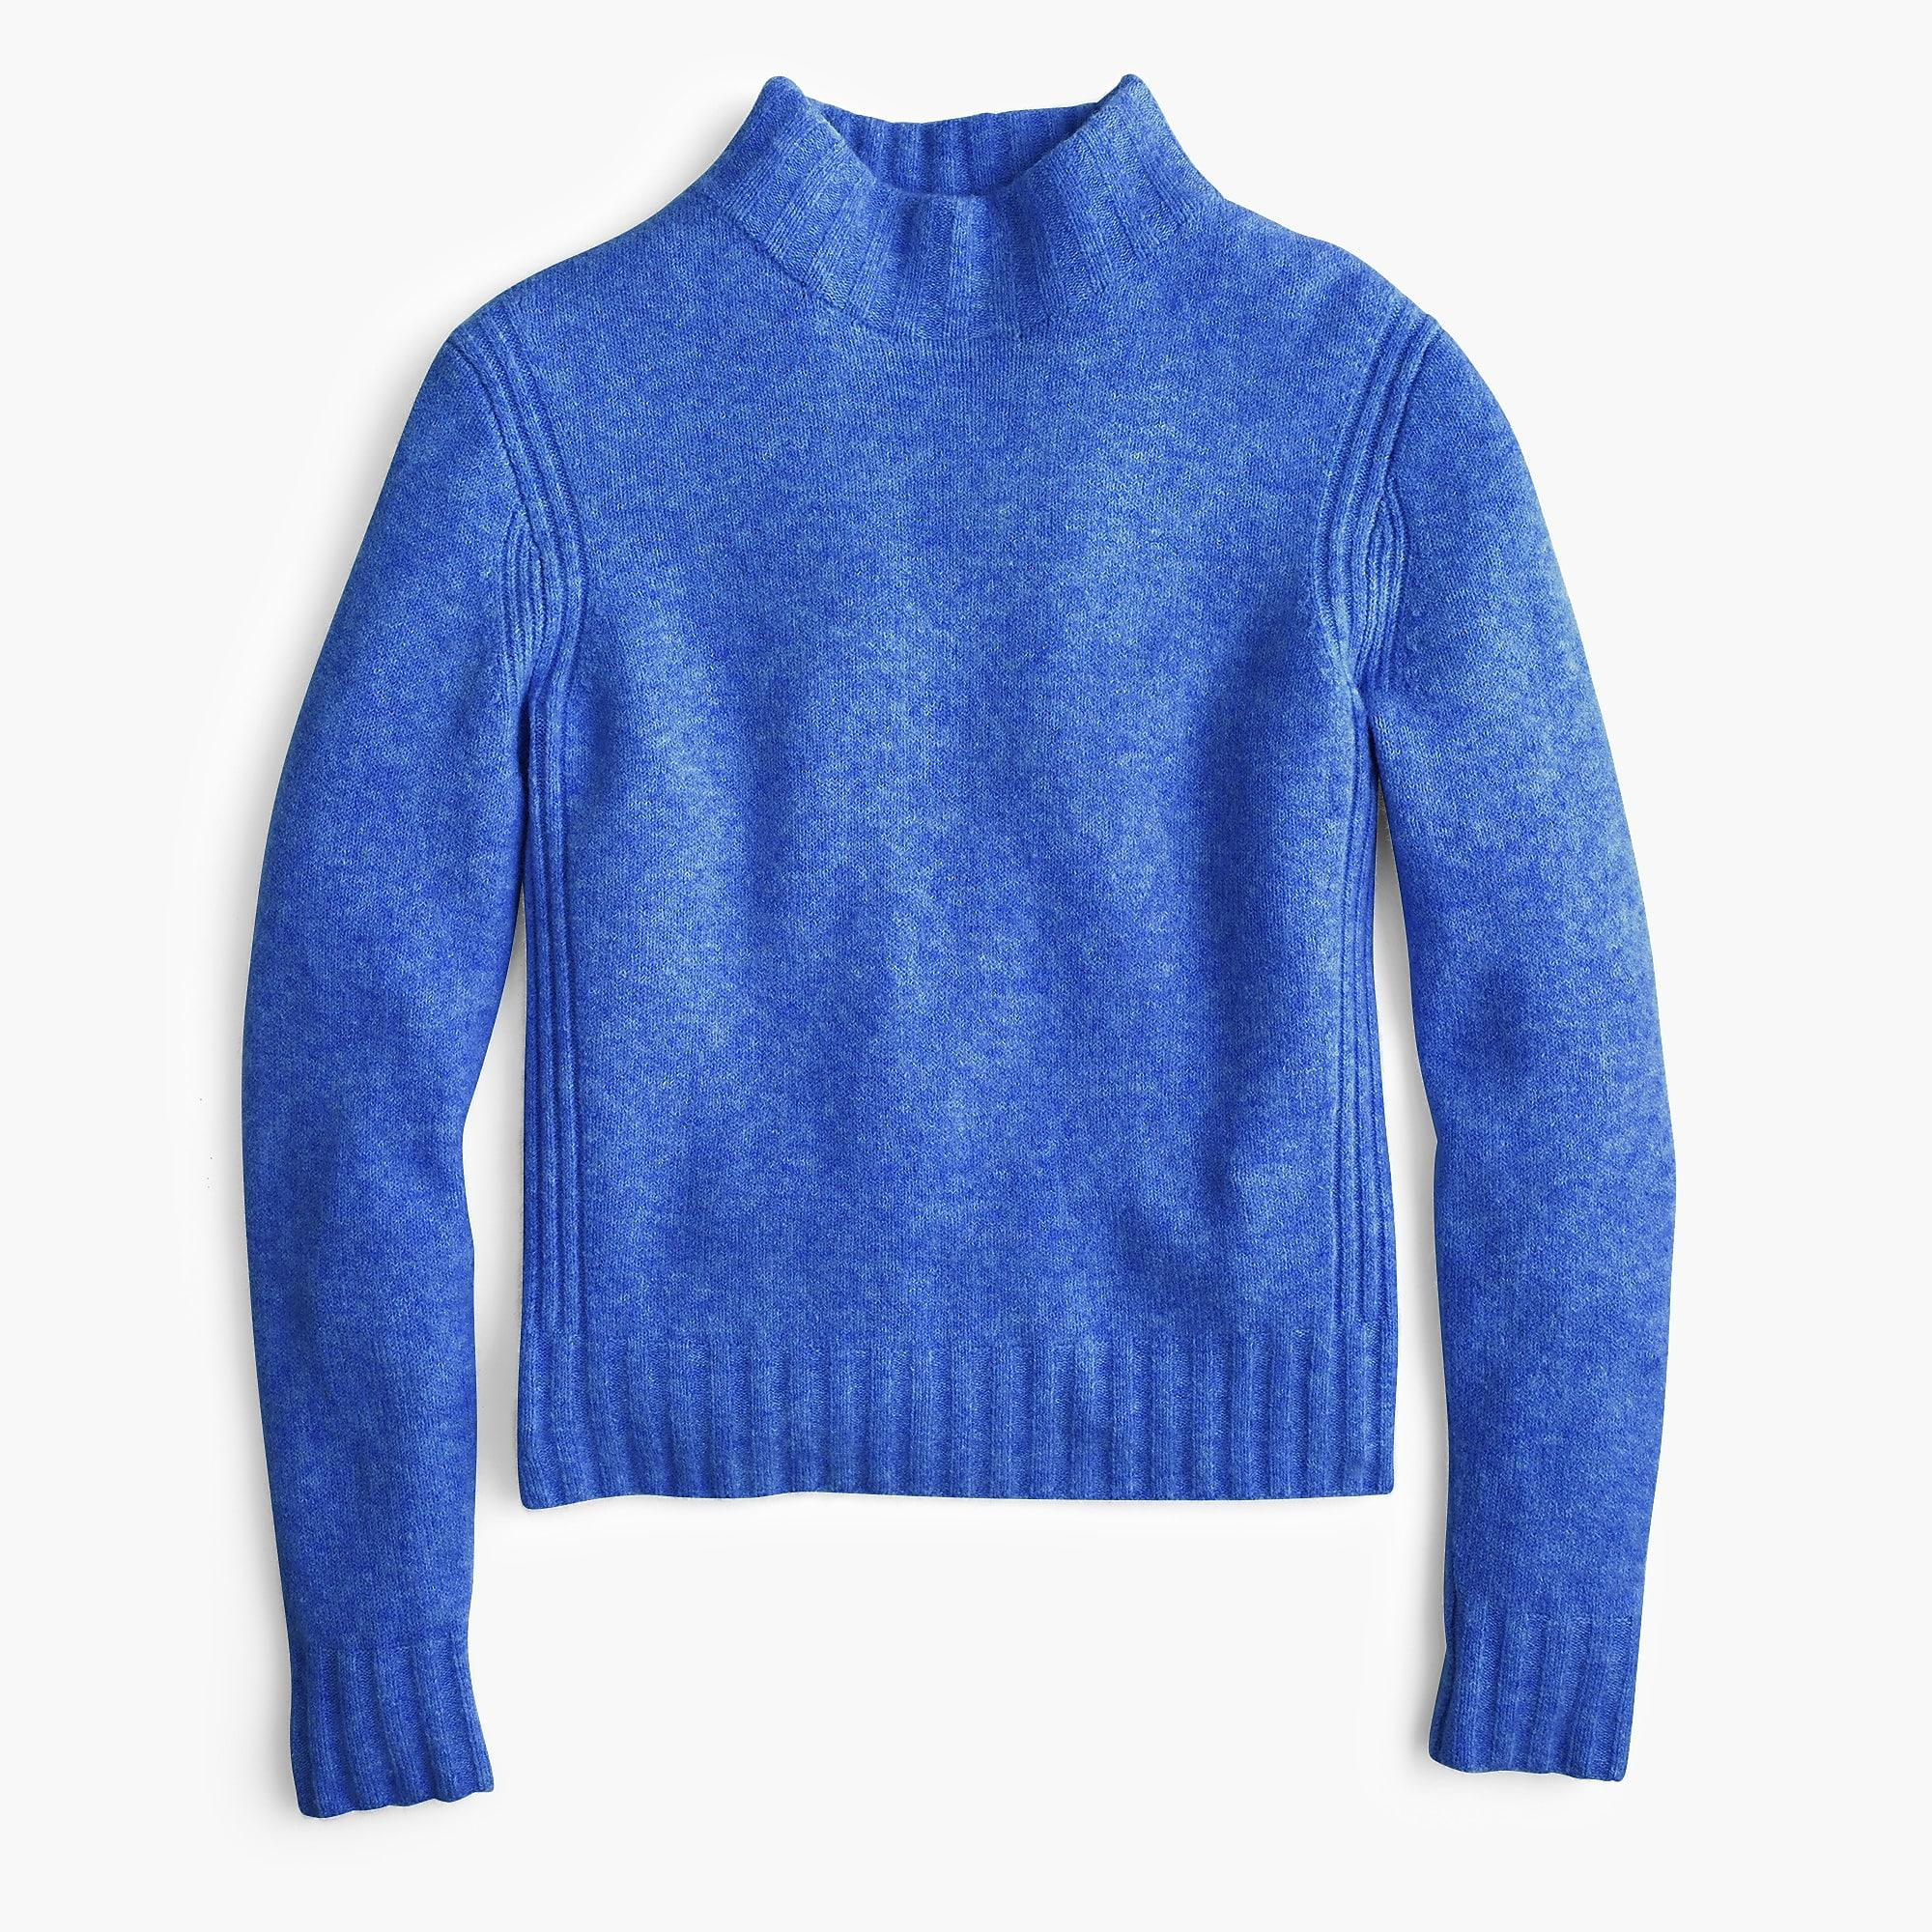 In Mockneck Lyst Blue Yarn J crew Sweater Supersoft q8EAxIREw